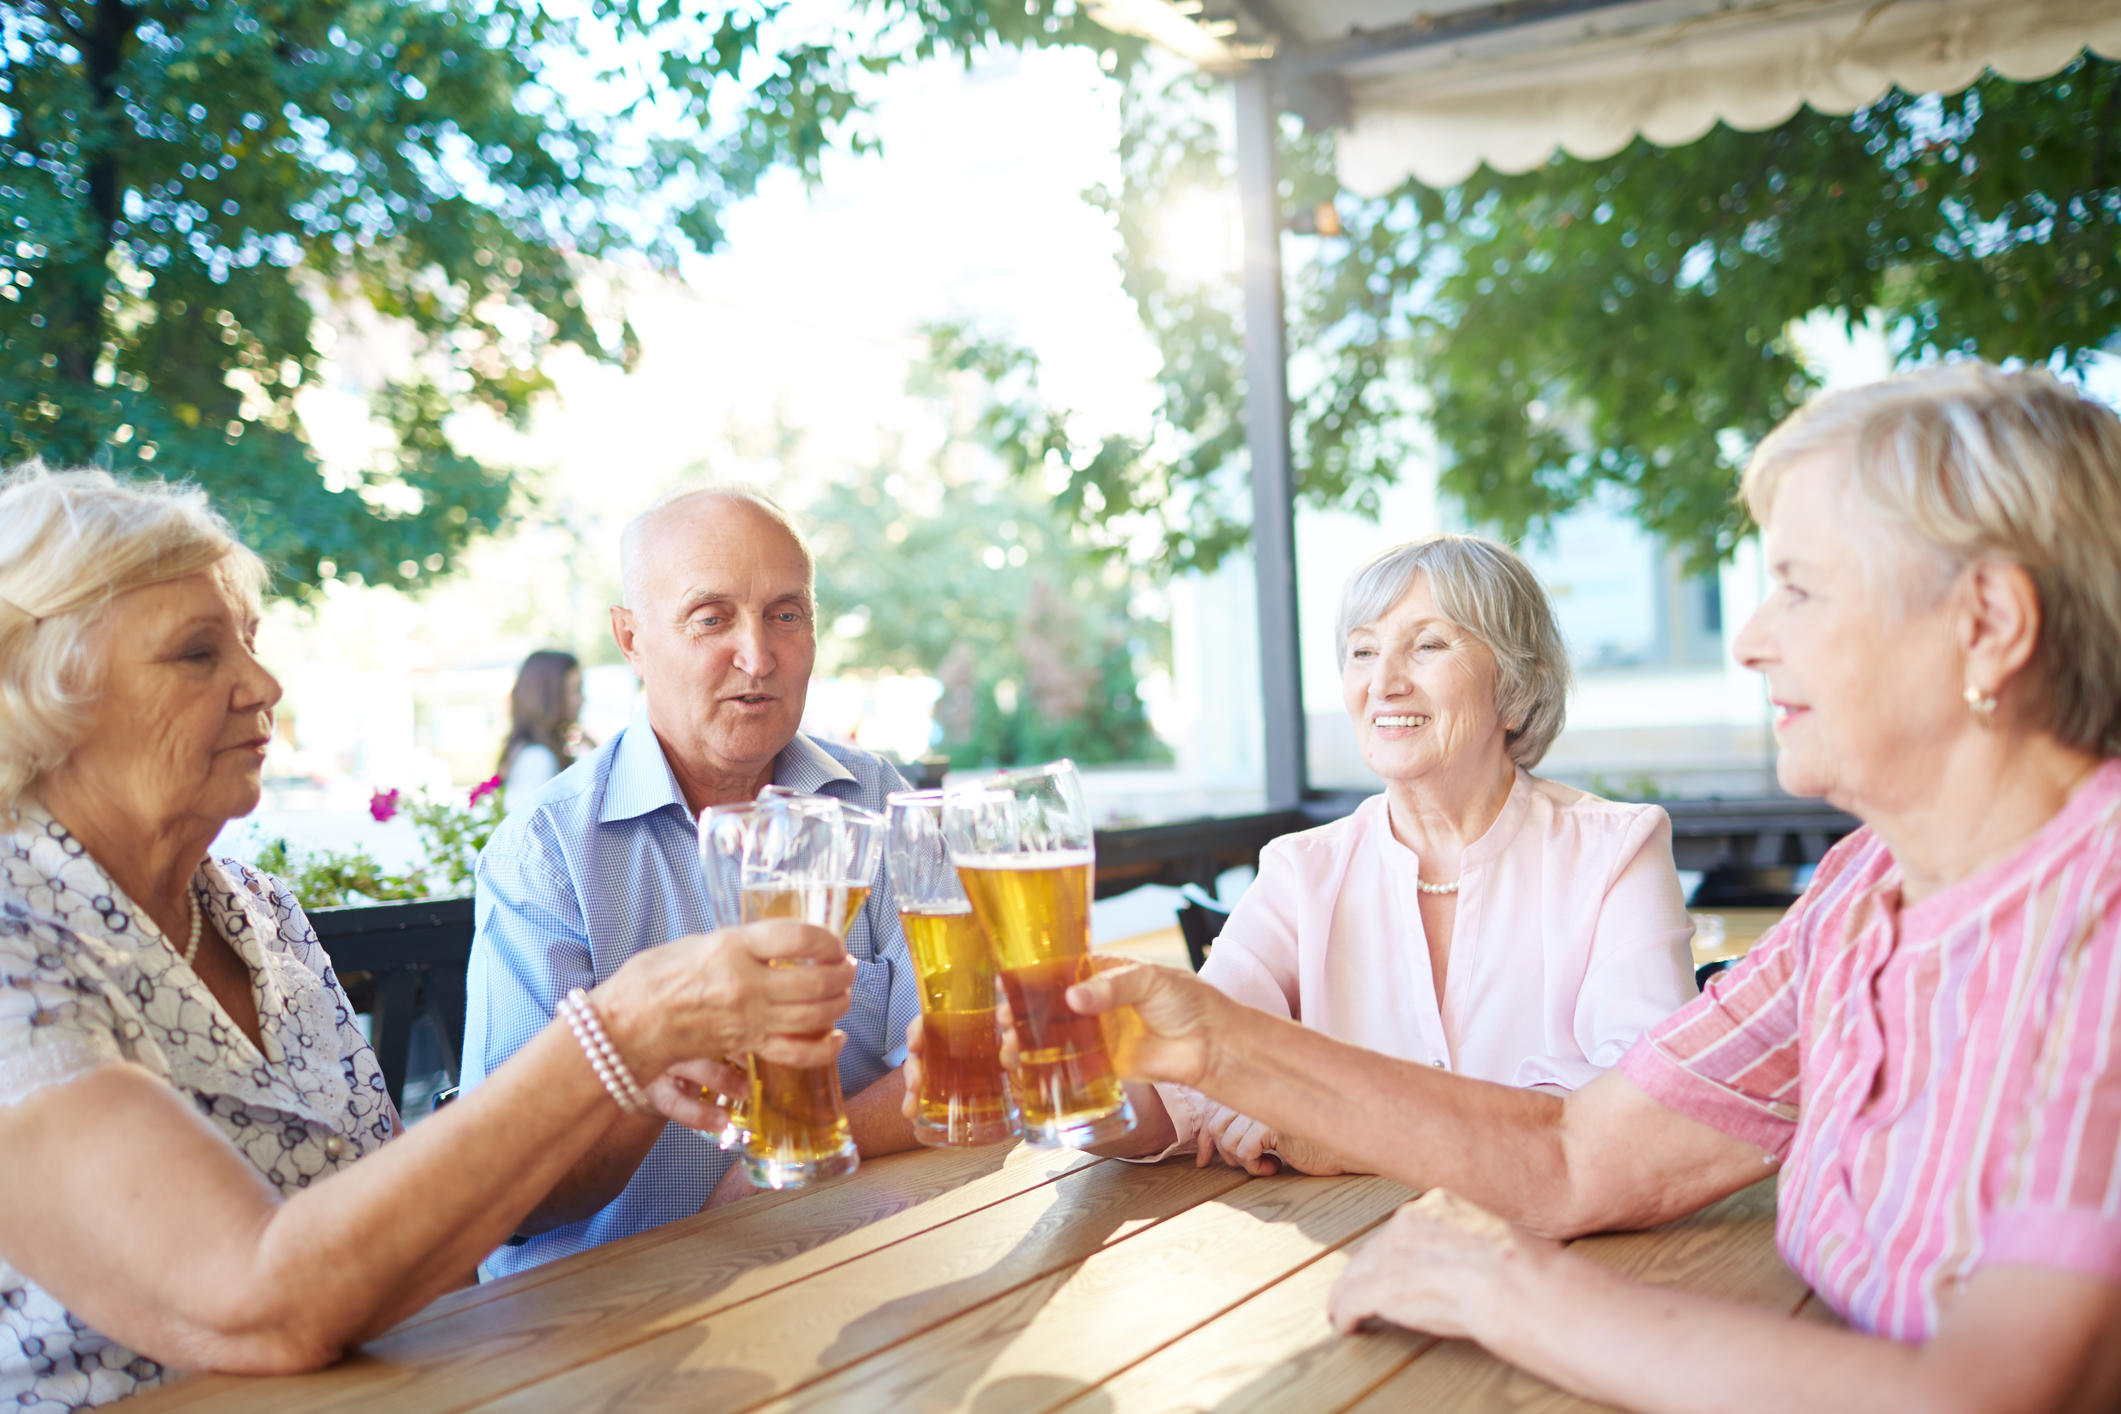 Group of elegant-looking elderly people sitting in outdoor pub and clanging glasses together with joy